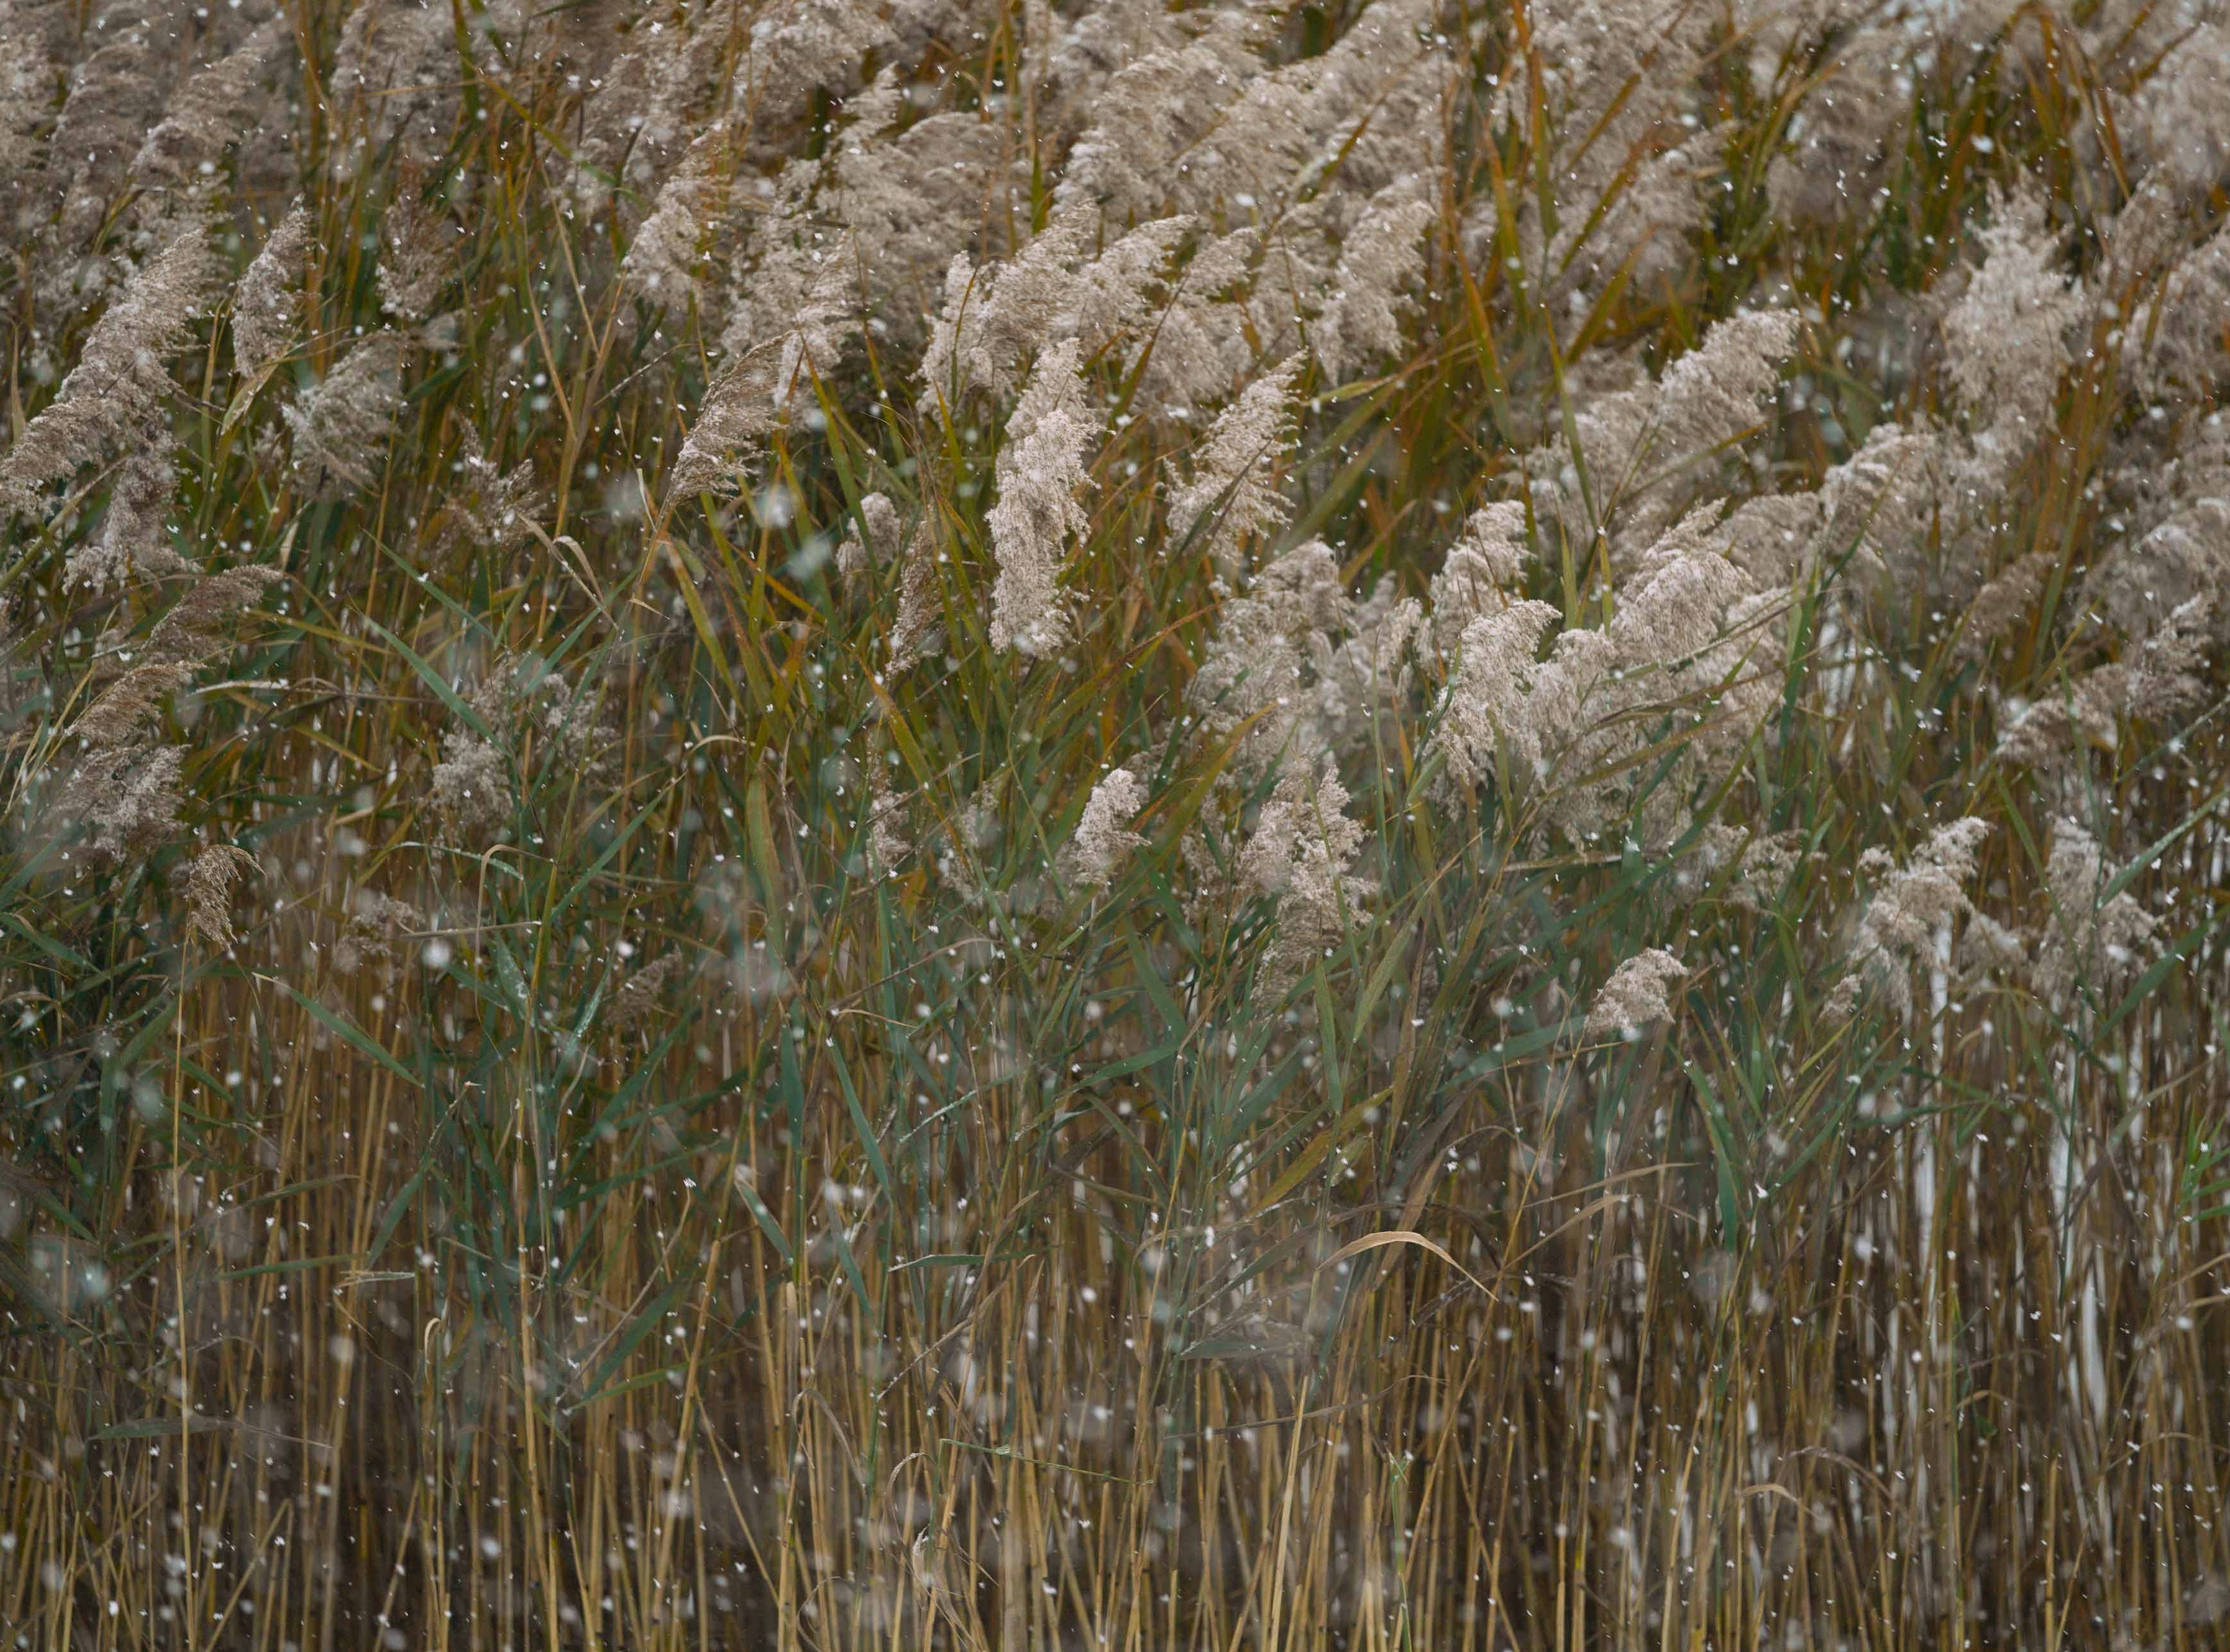 Reeds blow in the falling snow along the Delaware River in Old New Castle on Thursday morning.